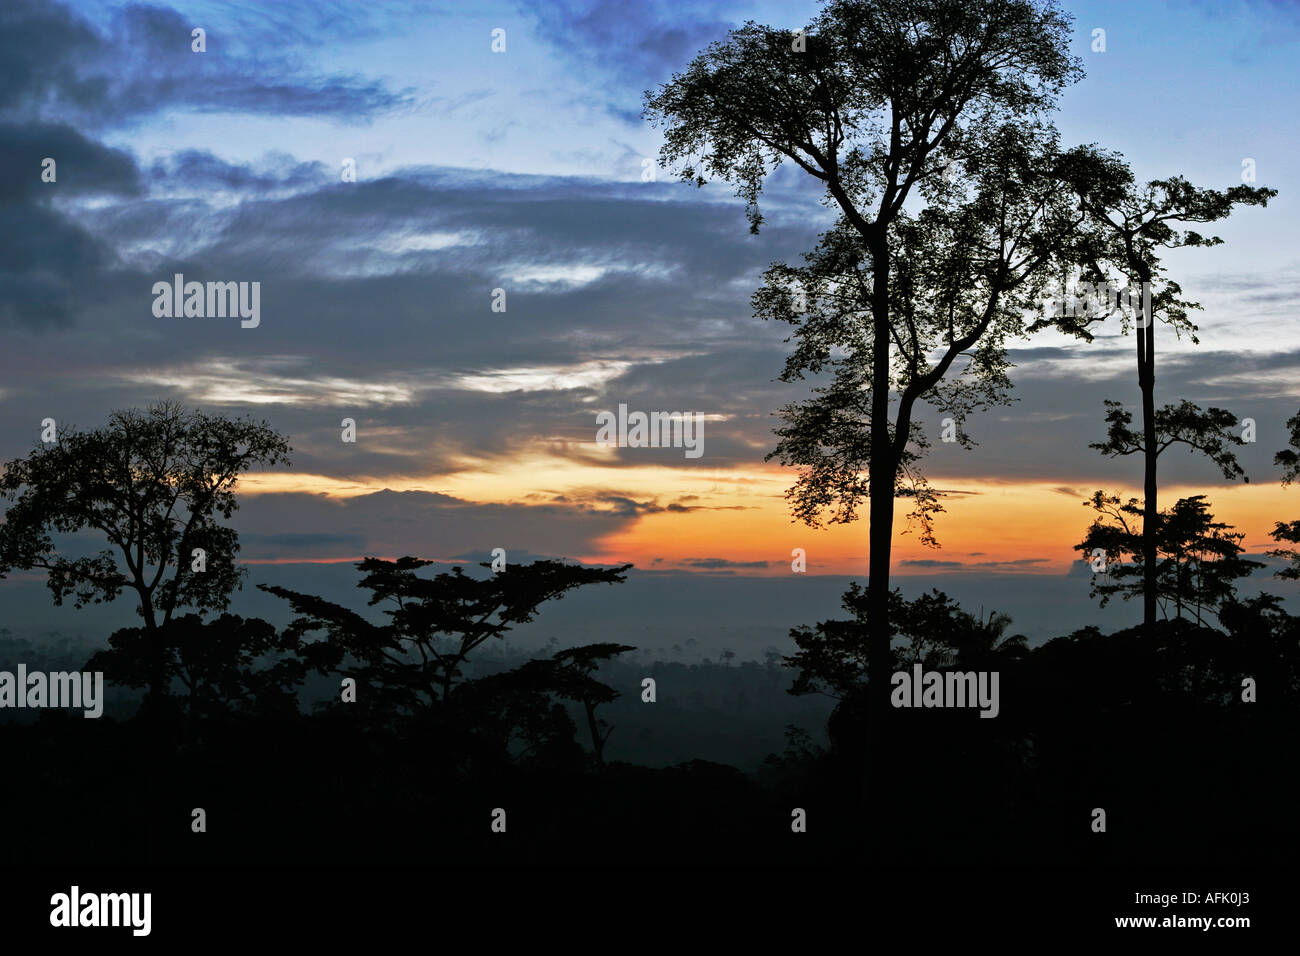 Dawn over Tropical  African Rainforest with mist clearing, Ghana, West Africa - Stock Image